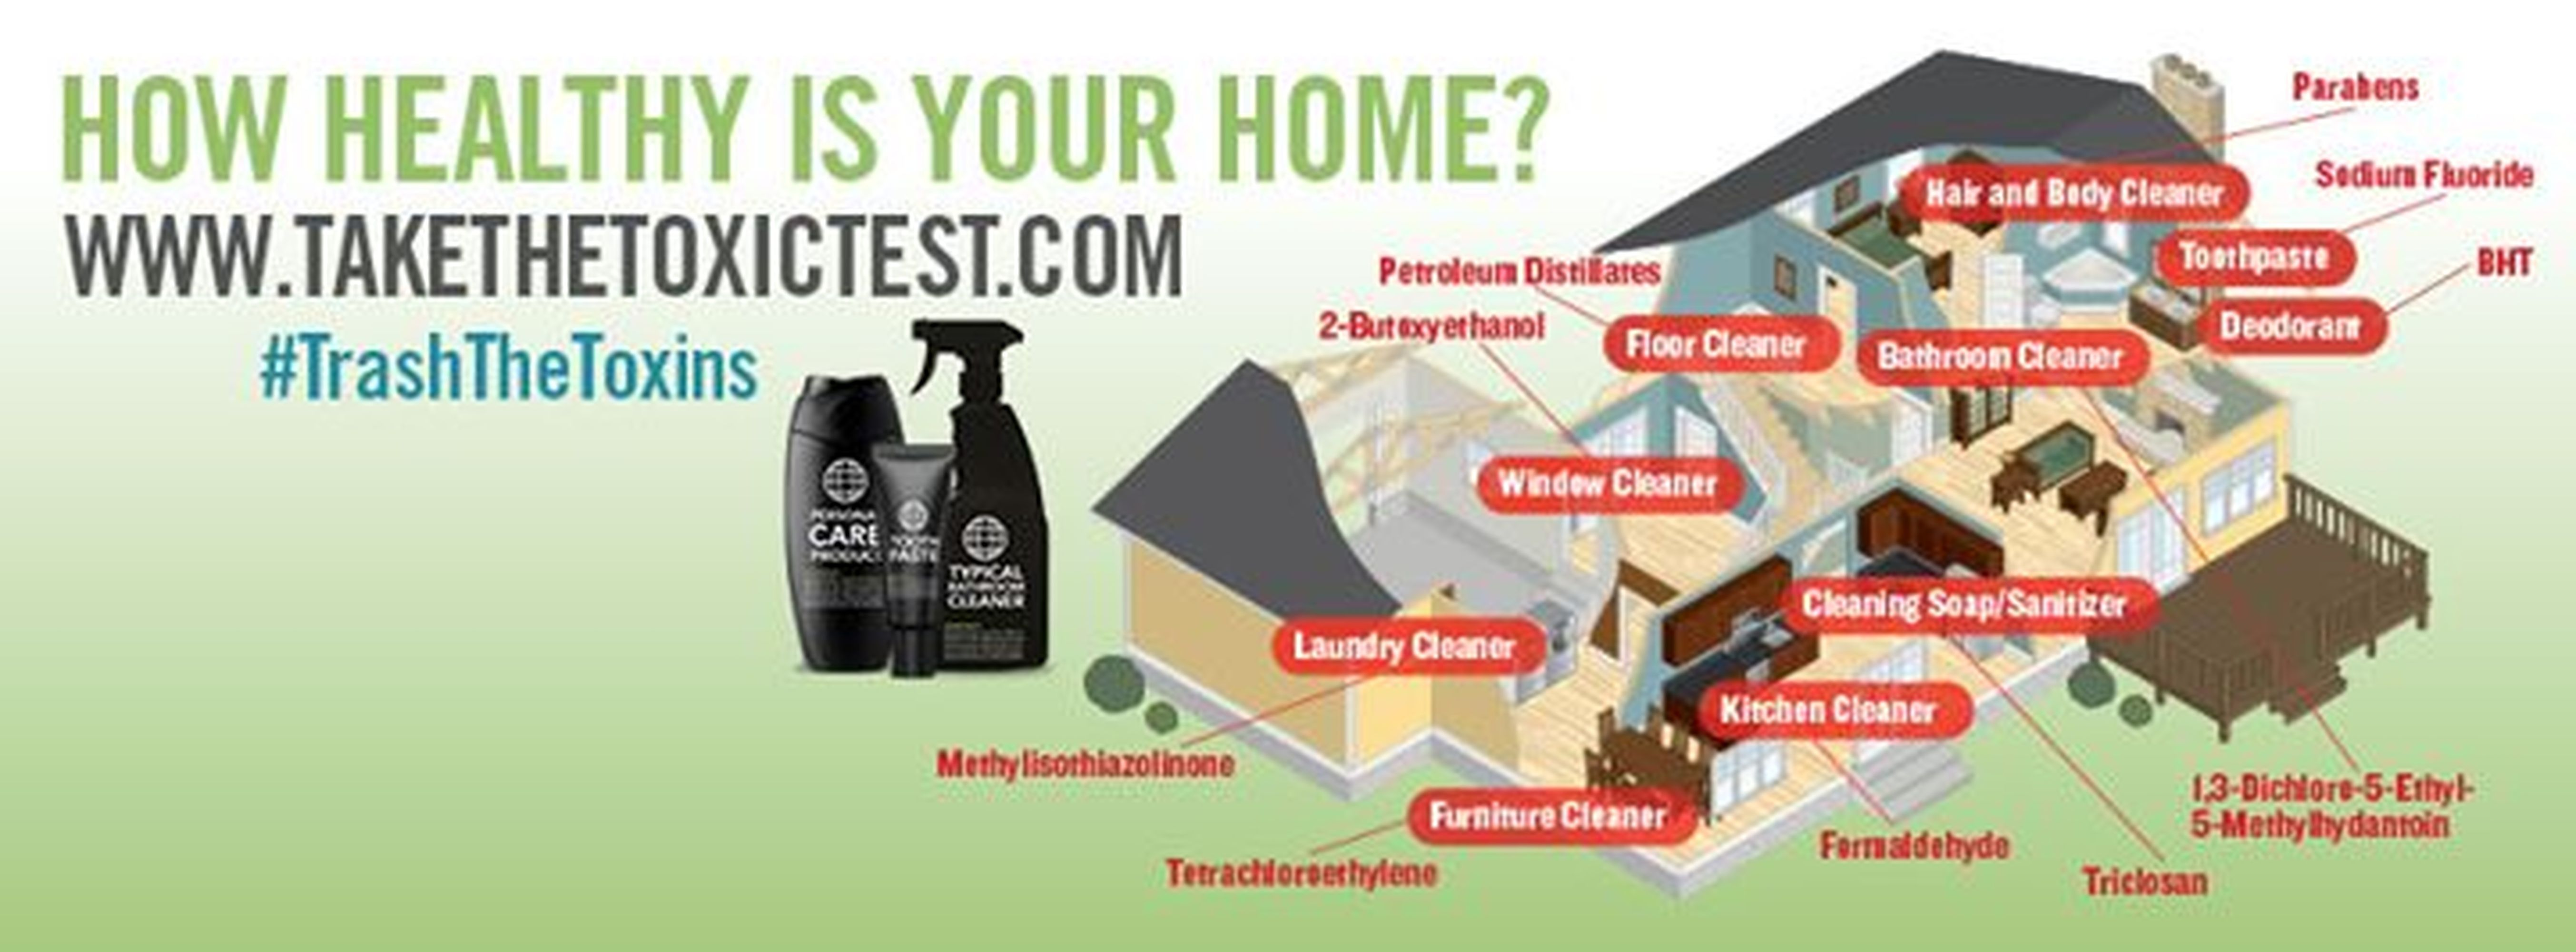 Is your Home Toxic? by Clint Fuqua in Dallas TX